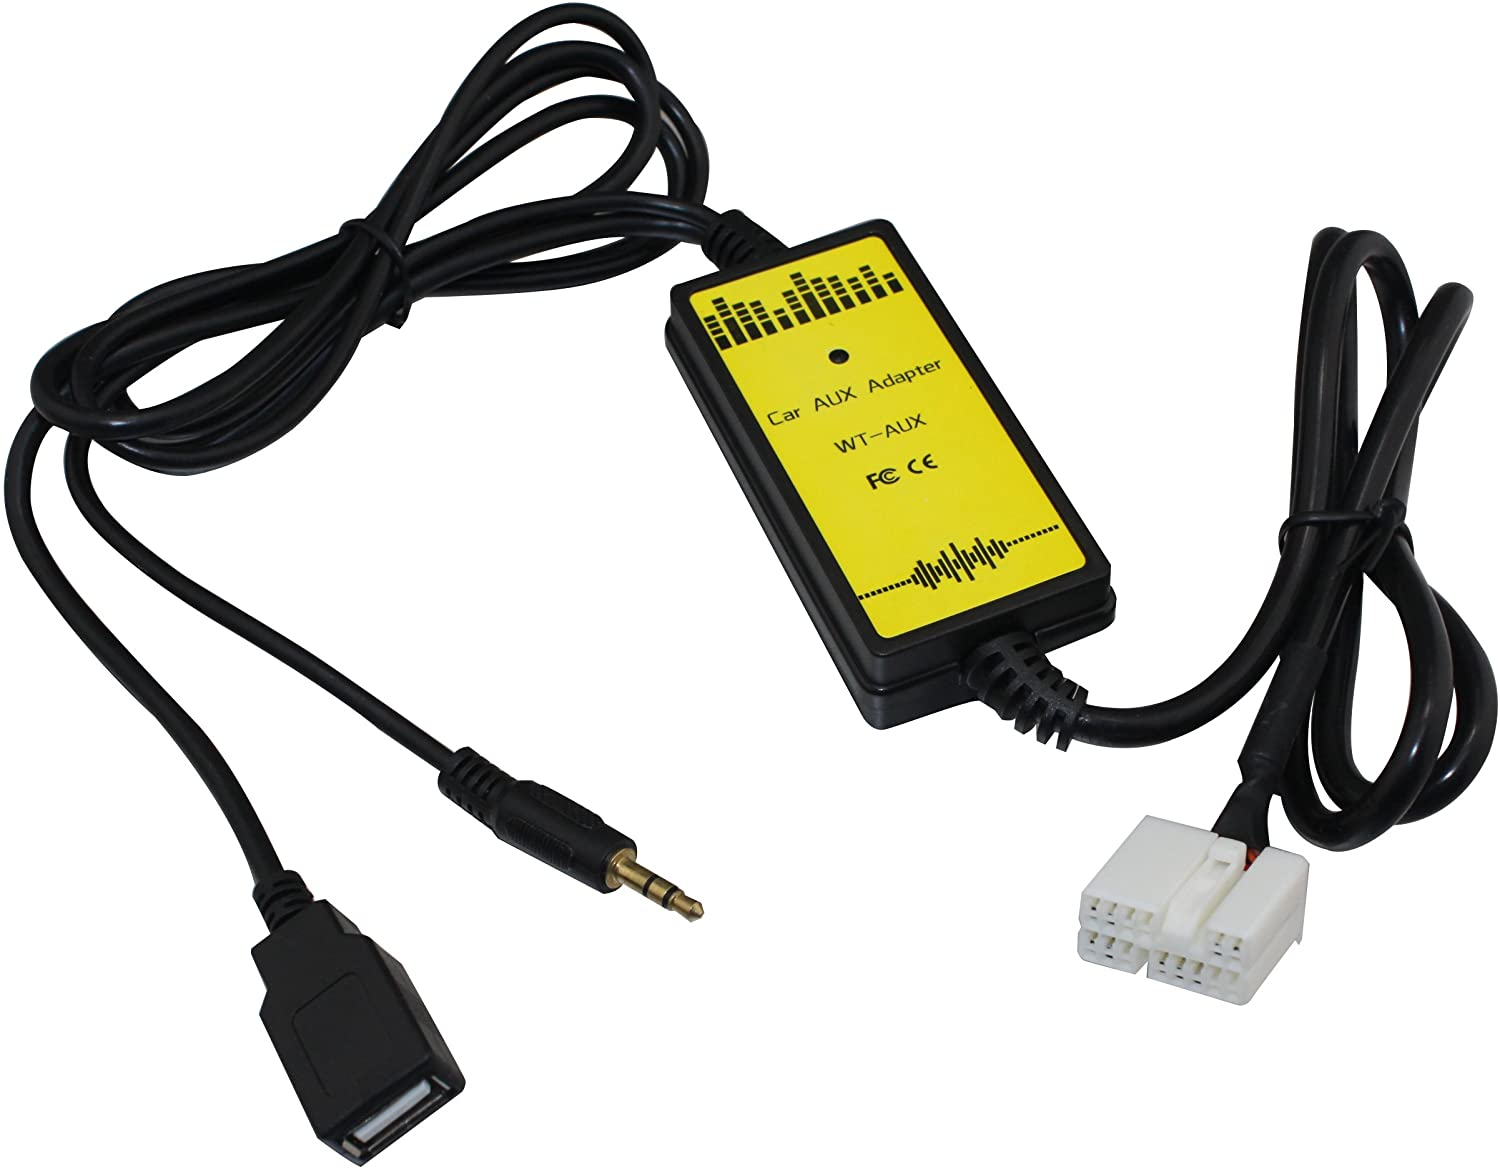 USB Aux Interface Adapter free Charge for Cable Honda 2003-201 excellence Accord